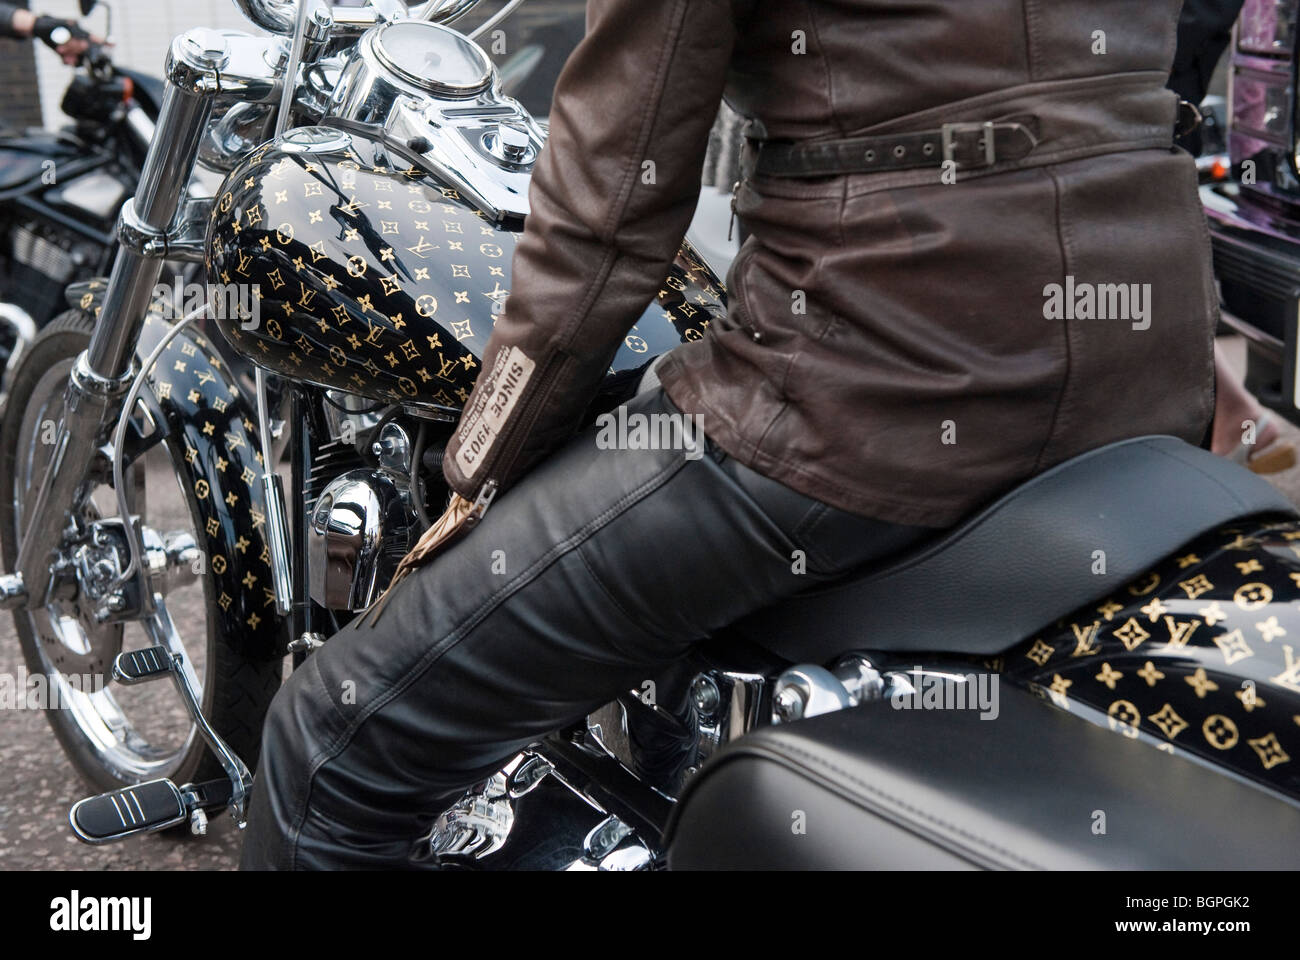 louis vuitton harley davidson motorcycle stock photo royalty free image 27540886 alamy. Black Bedroom Furniture Sets. Home Design Ideas